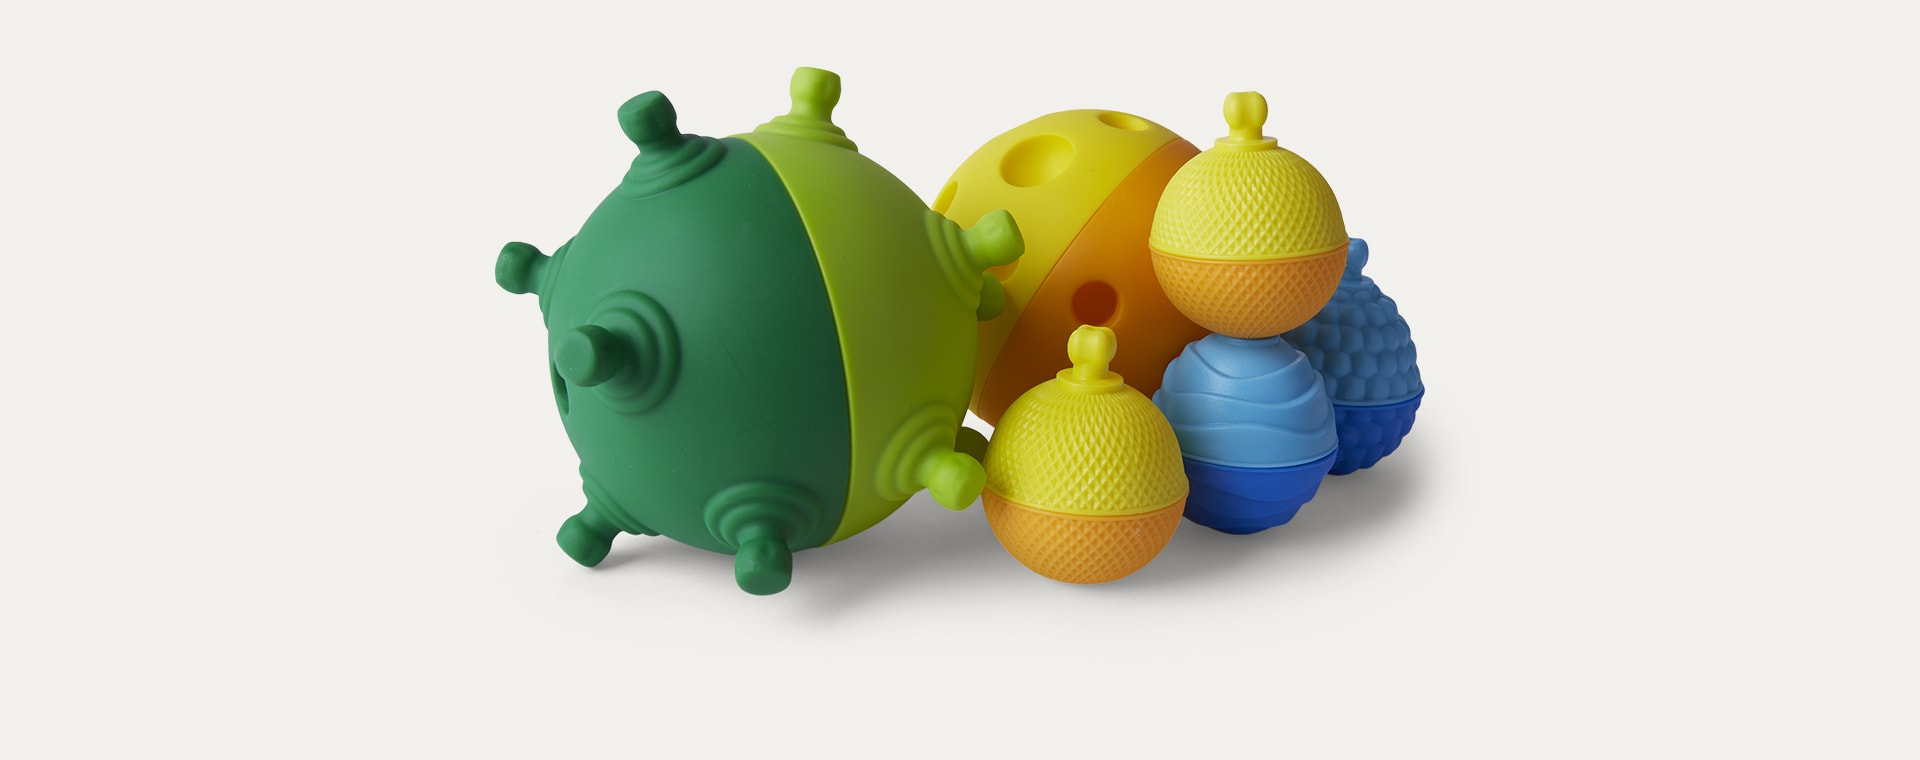 Multi Lalaboom 2 Sensory Balls And Beads - 12 Pieces